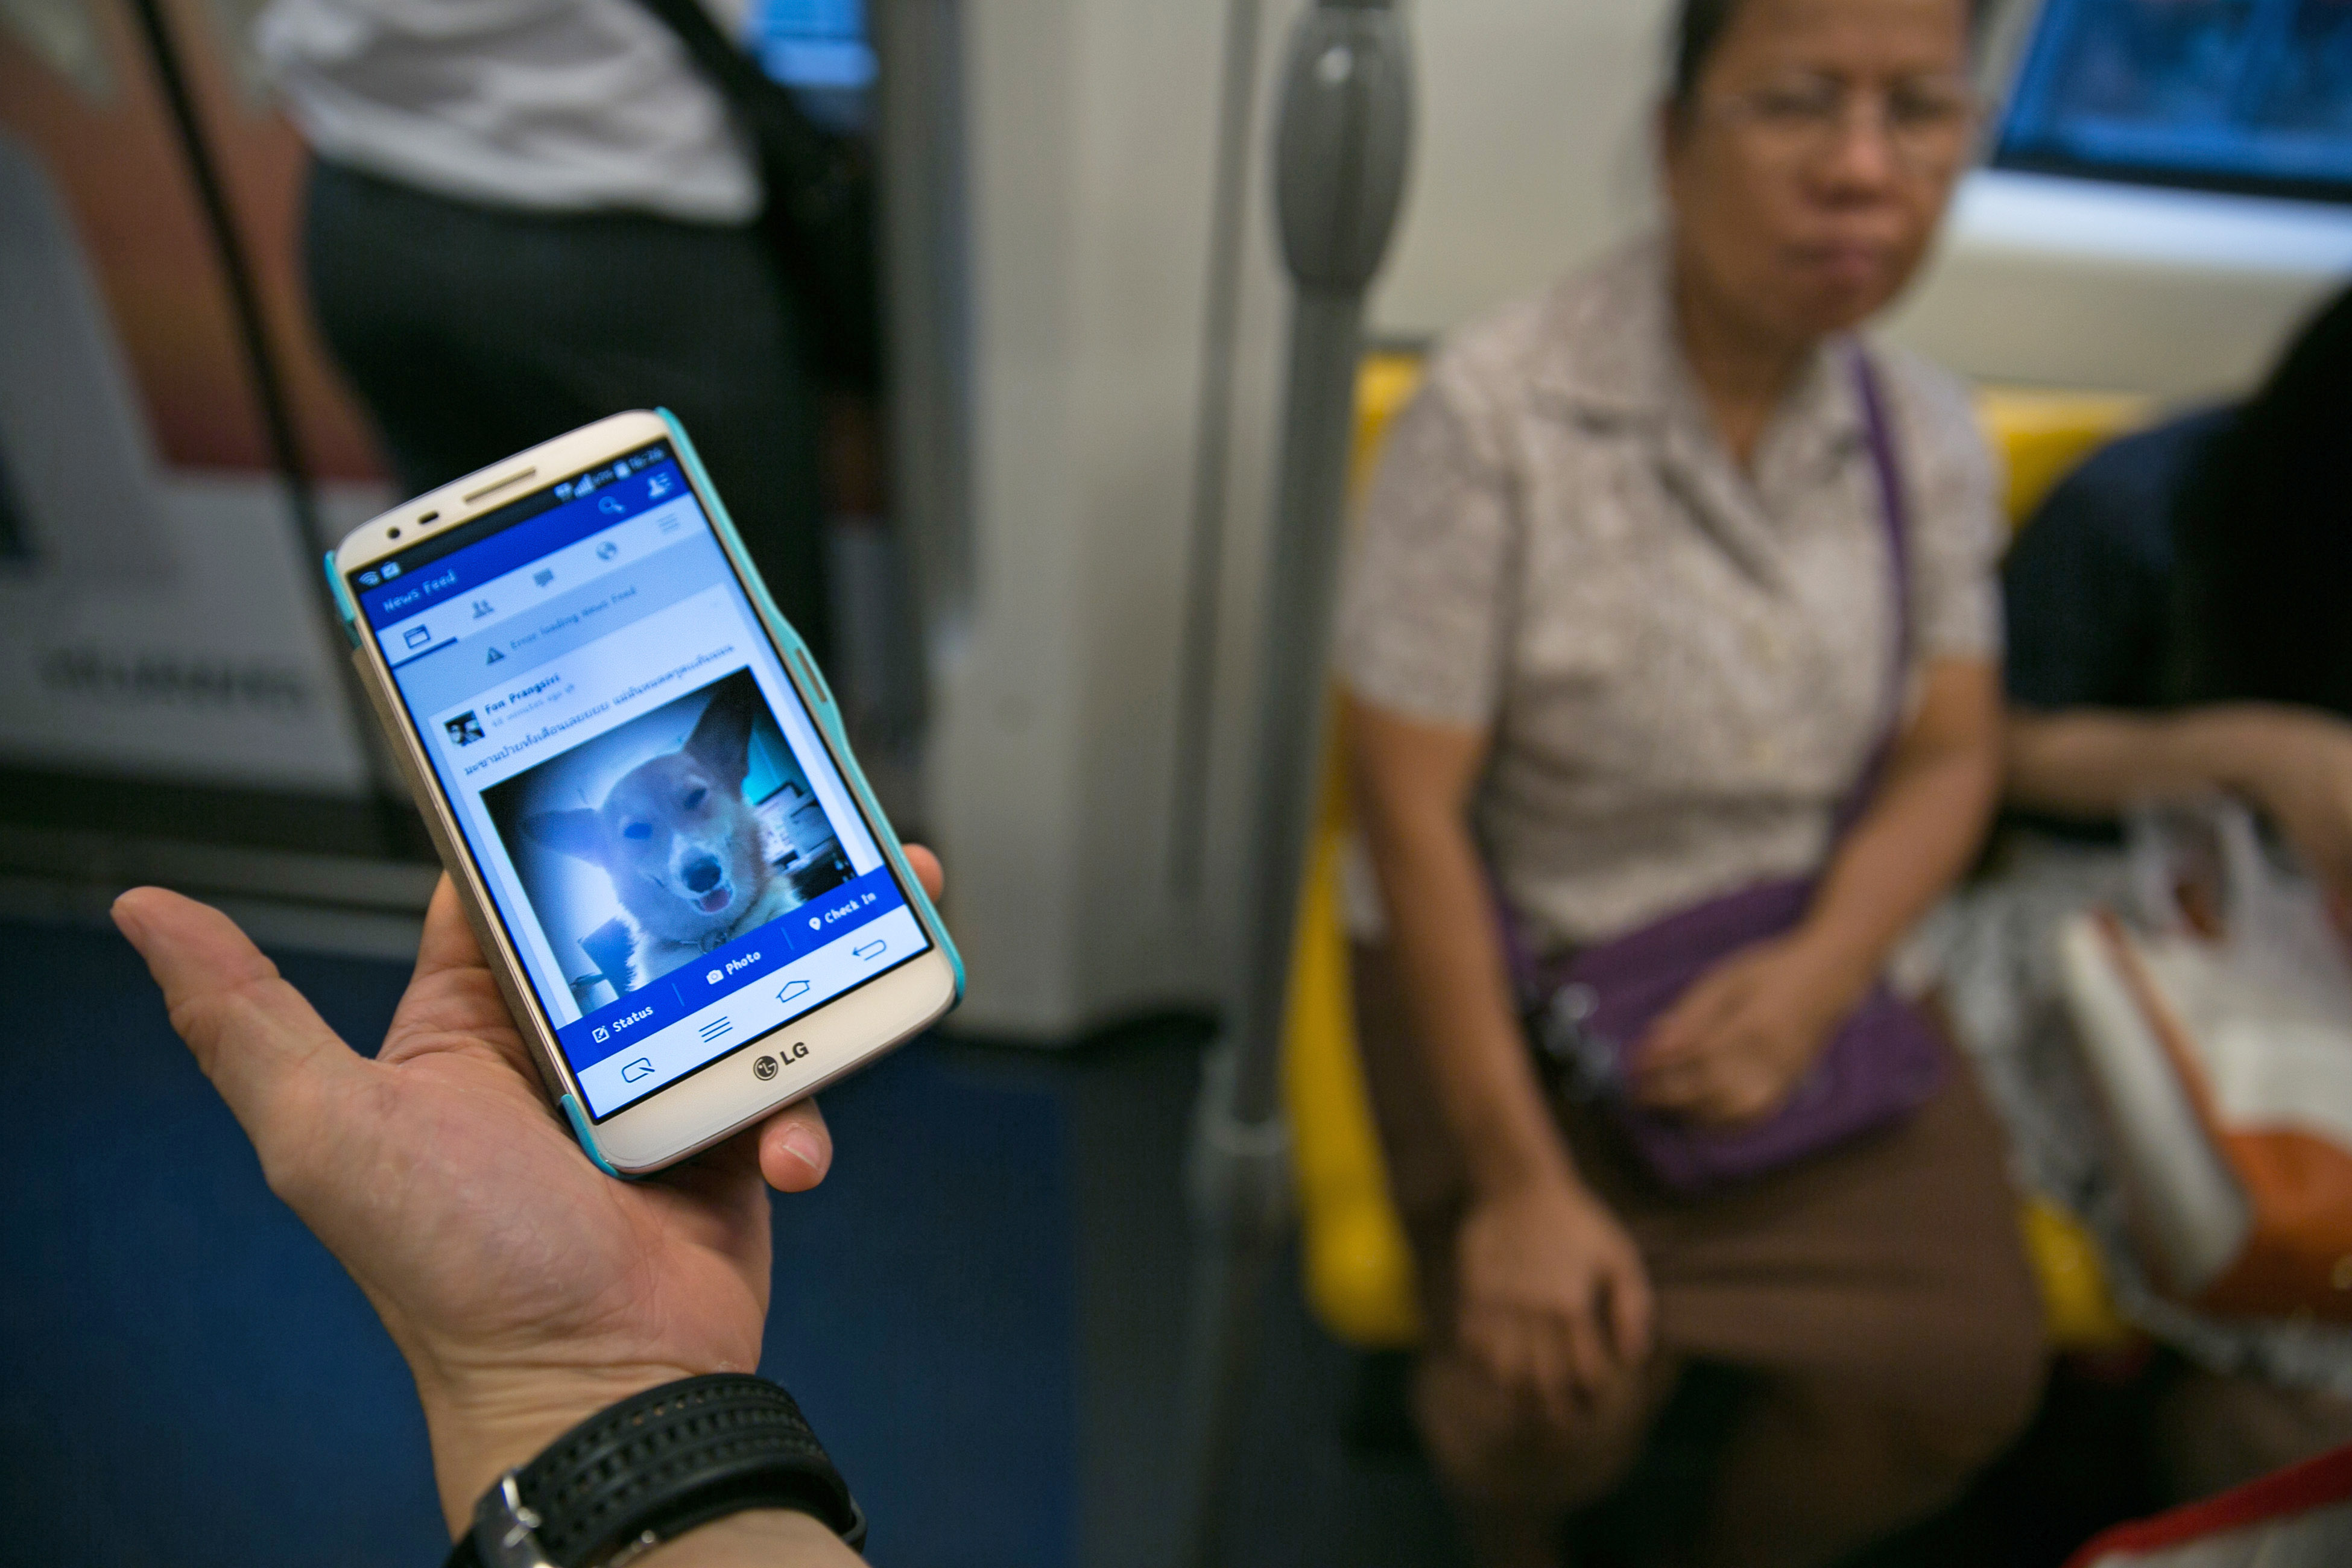 A man shows his mobile phone while riding the Bangkok sky train on May 28, 2014. A widespread Facebook outage occurred in Thailand one afternoon while the ruling military junta who staged a coup denied causing it.